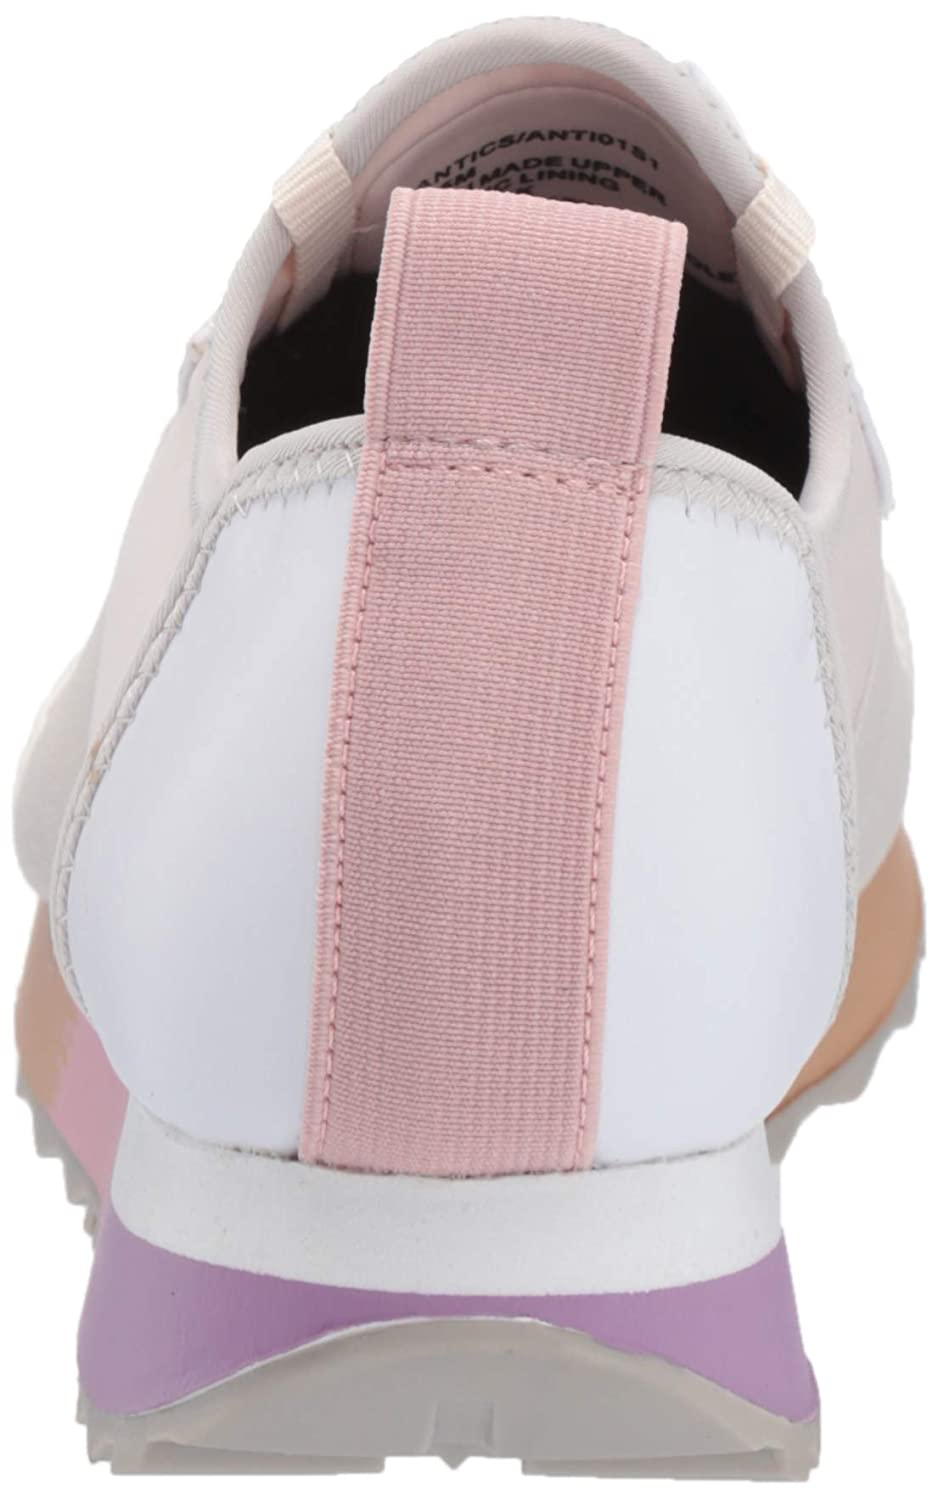 f4dfd28d0dd Steve Madden Women s Antics Sneaker  Amazon.co.uk  Shoes   Bags